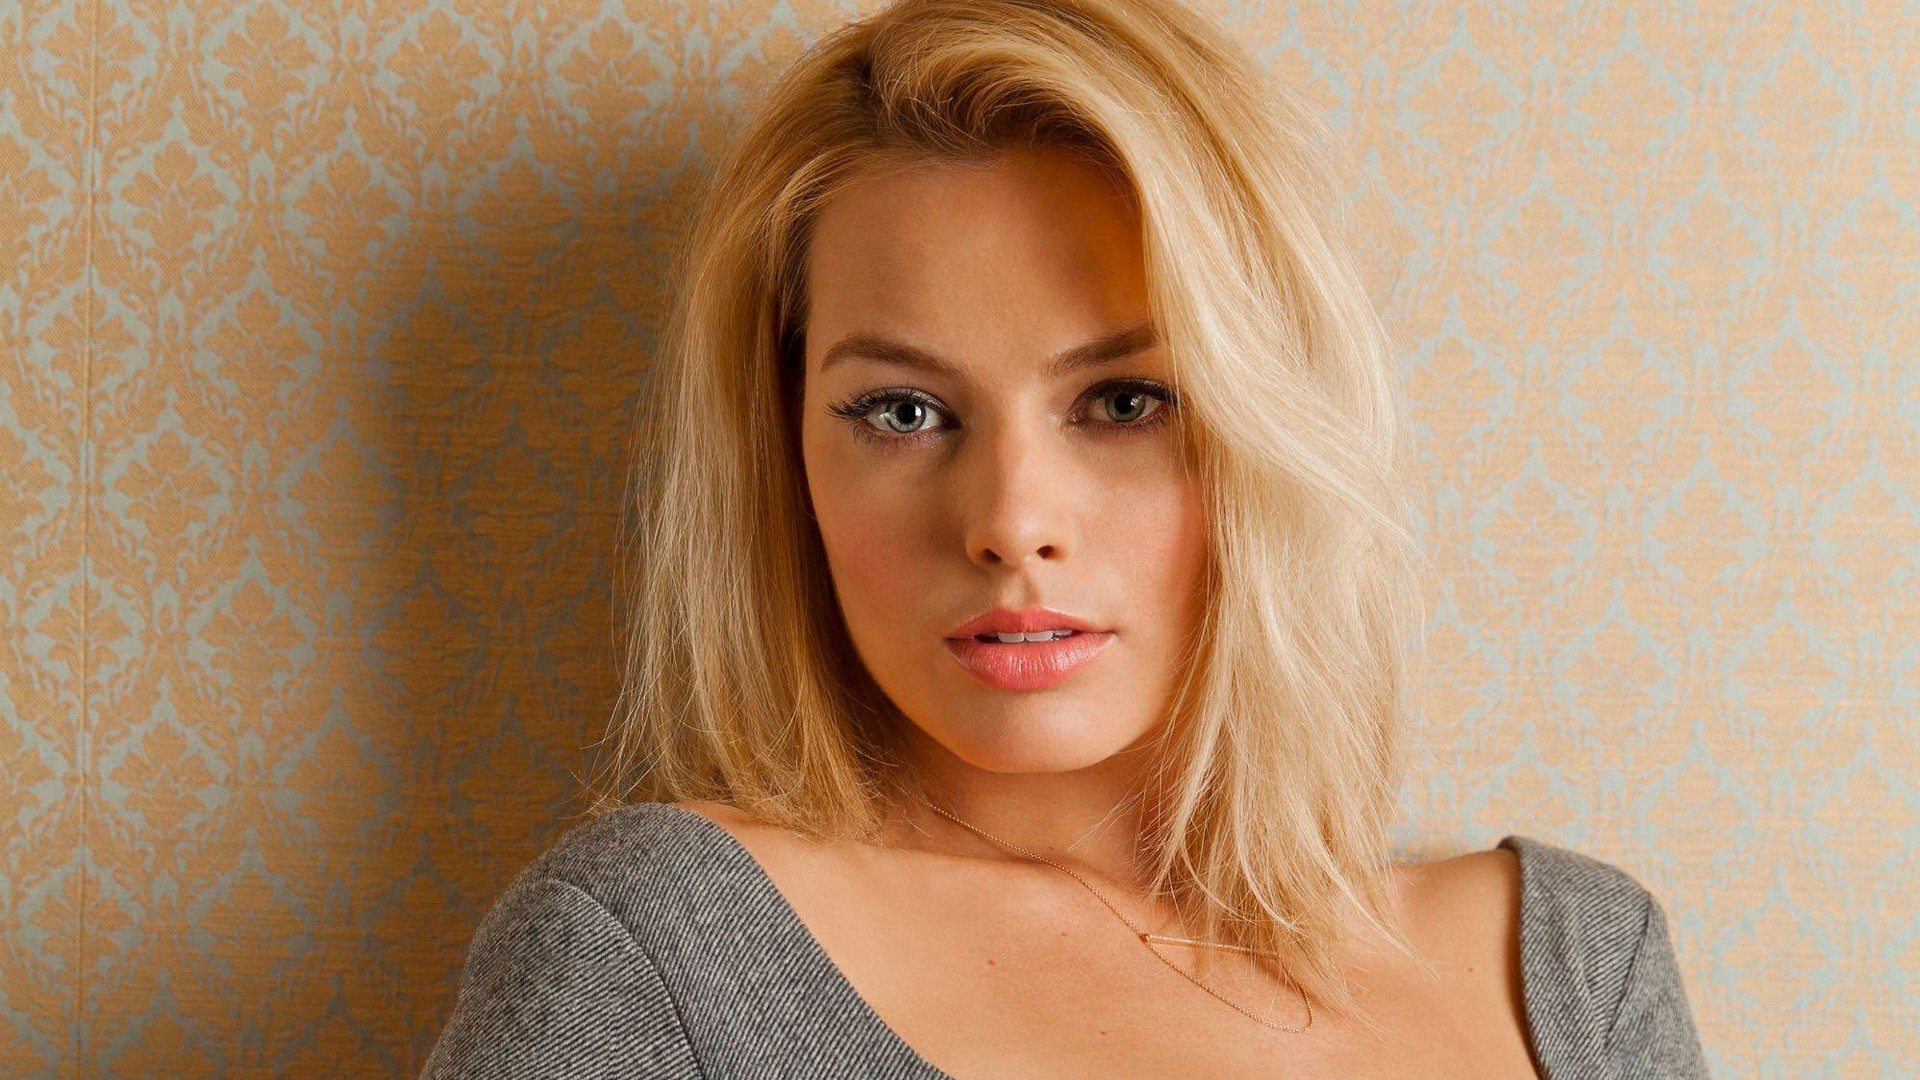 Real 3d Wallpaper For Android Margot Robbie 5 Wallpapers Hd Wallpapers Id 20098